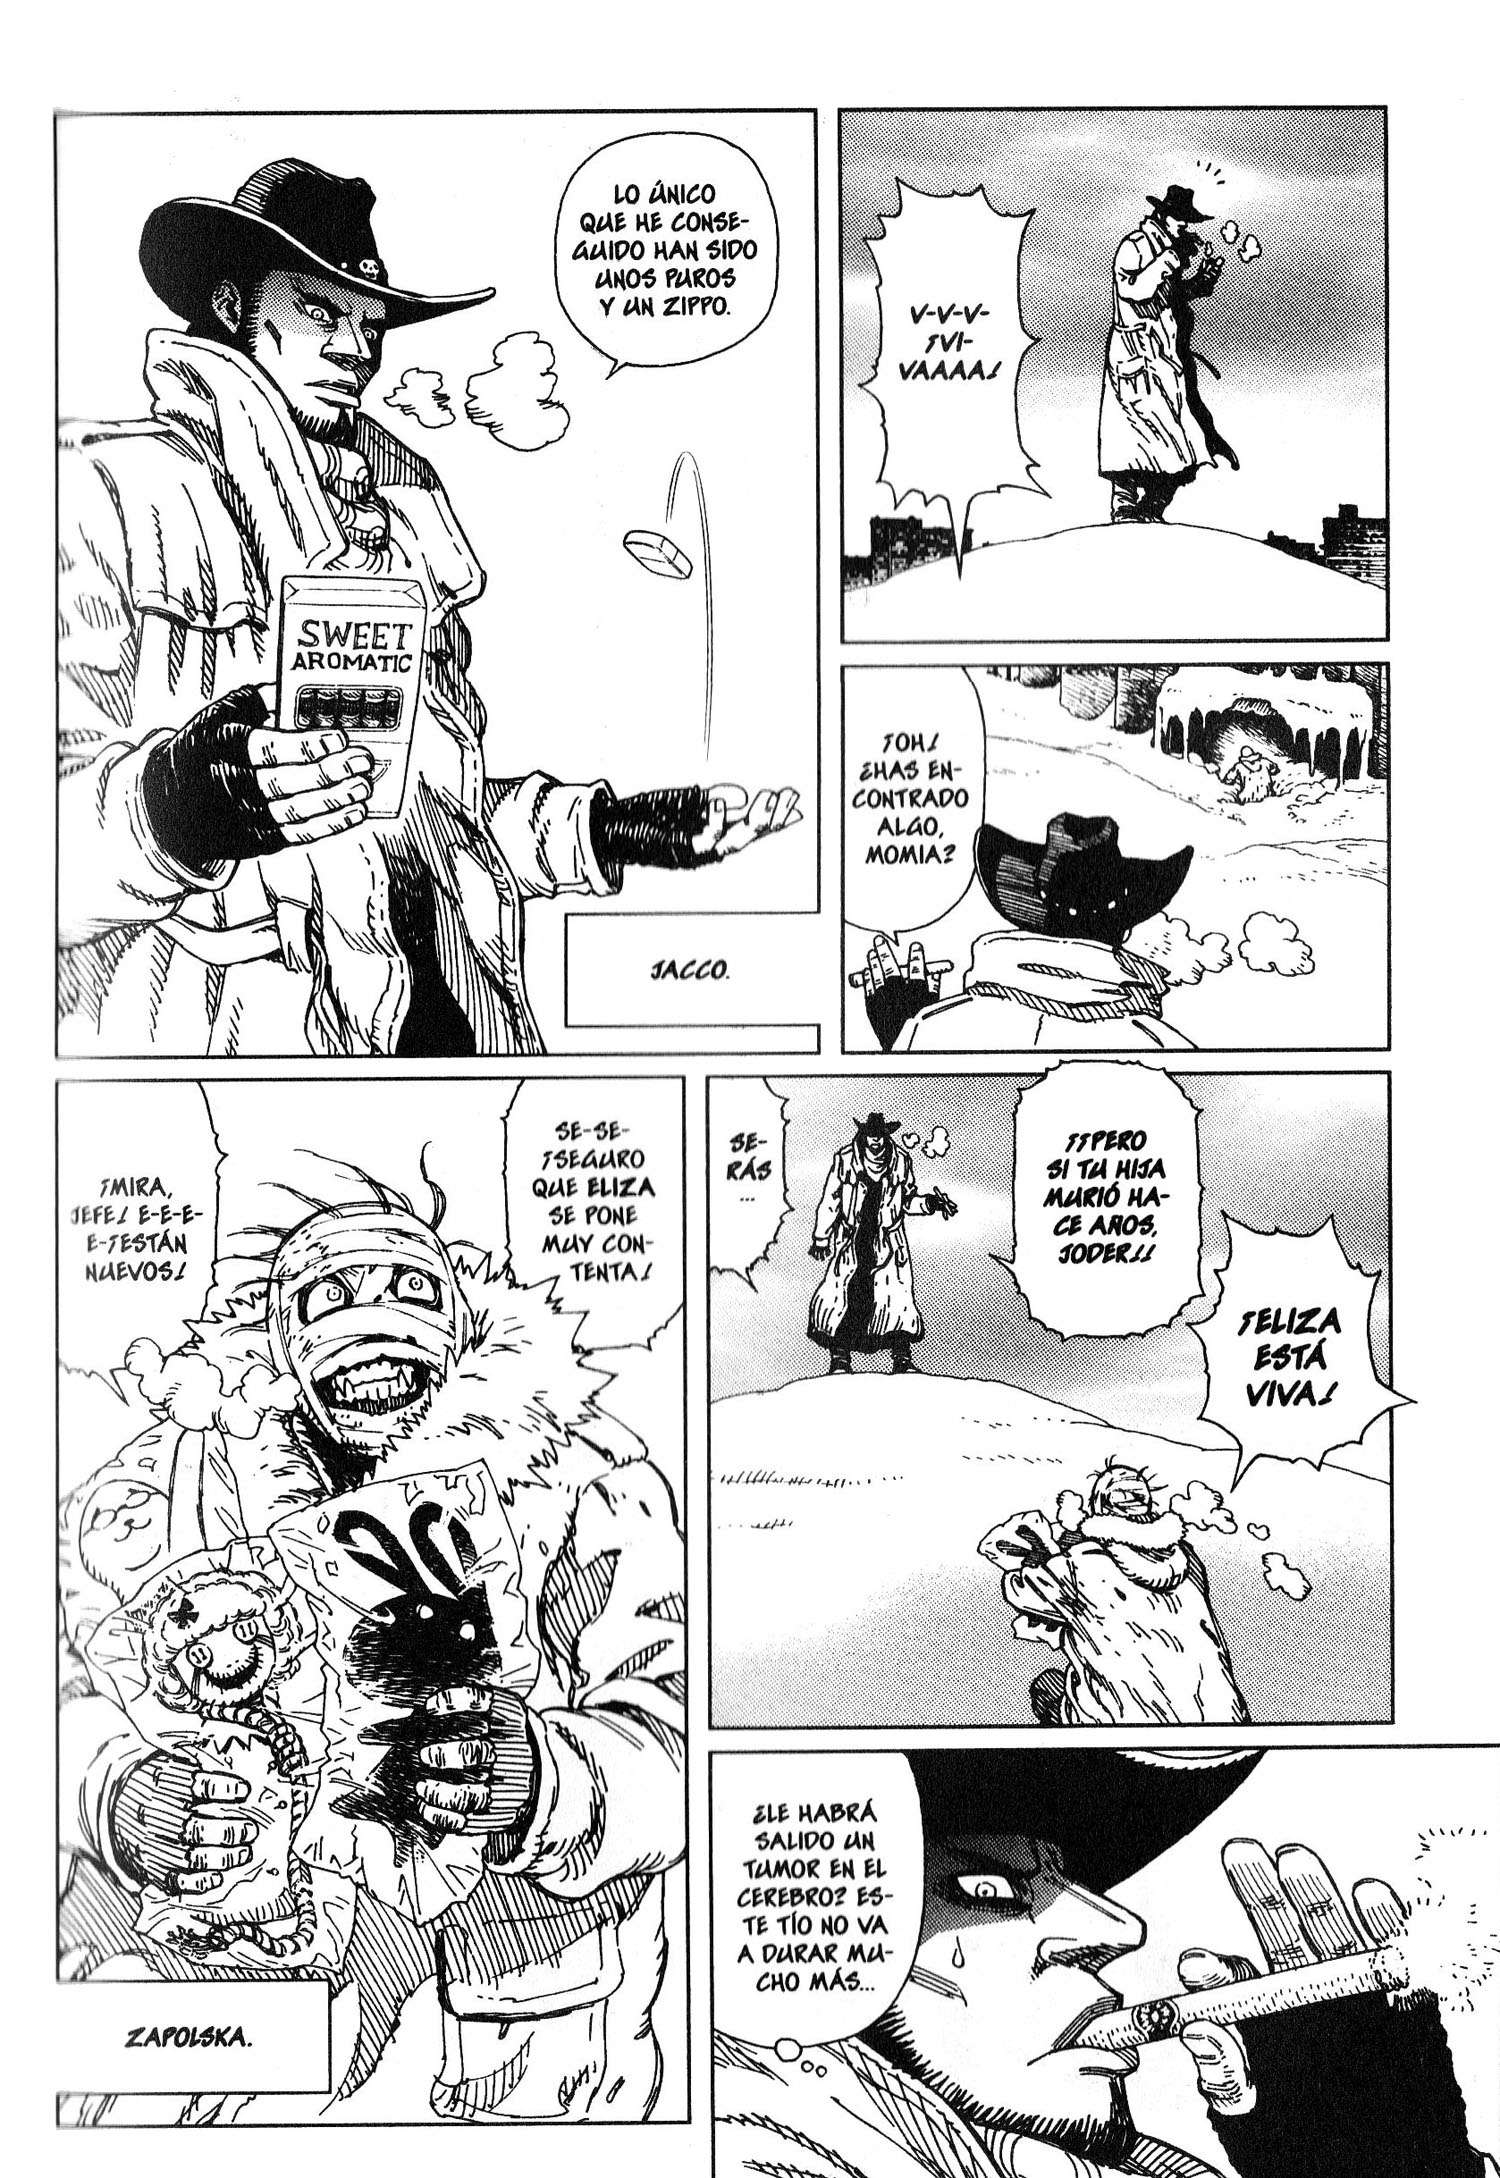 http://c5.ninemanga.com/es_manga/pic2/1/15873/523576/1d9817398b2792356c09ed411d897a93.jpg Page 3